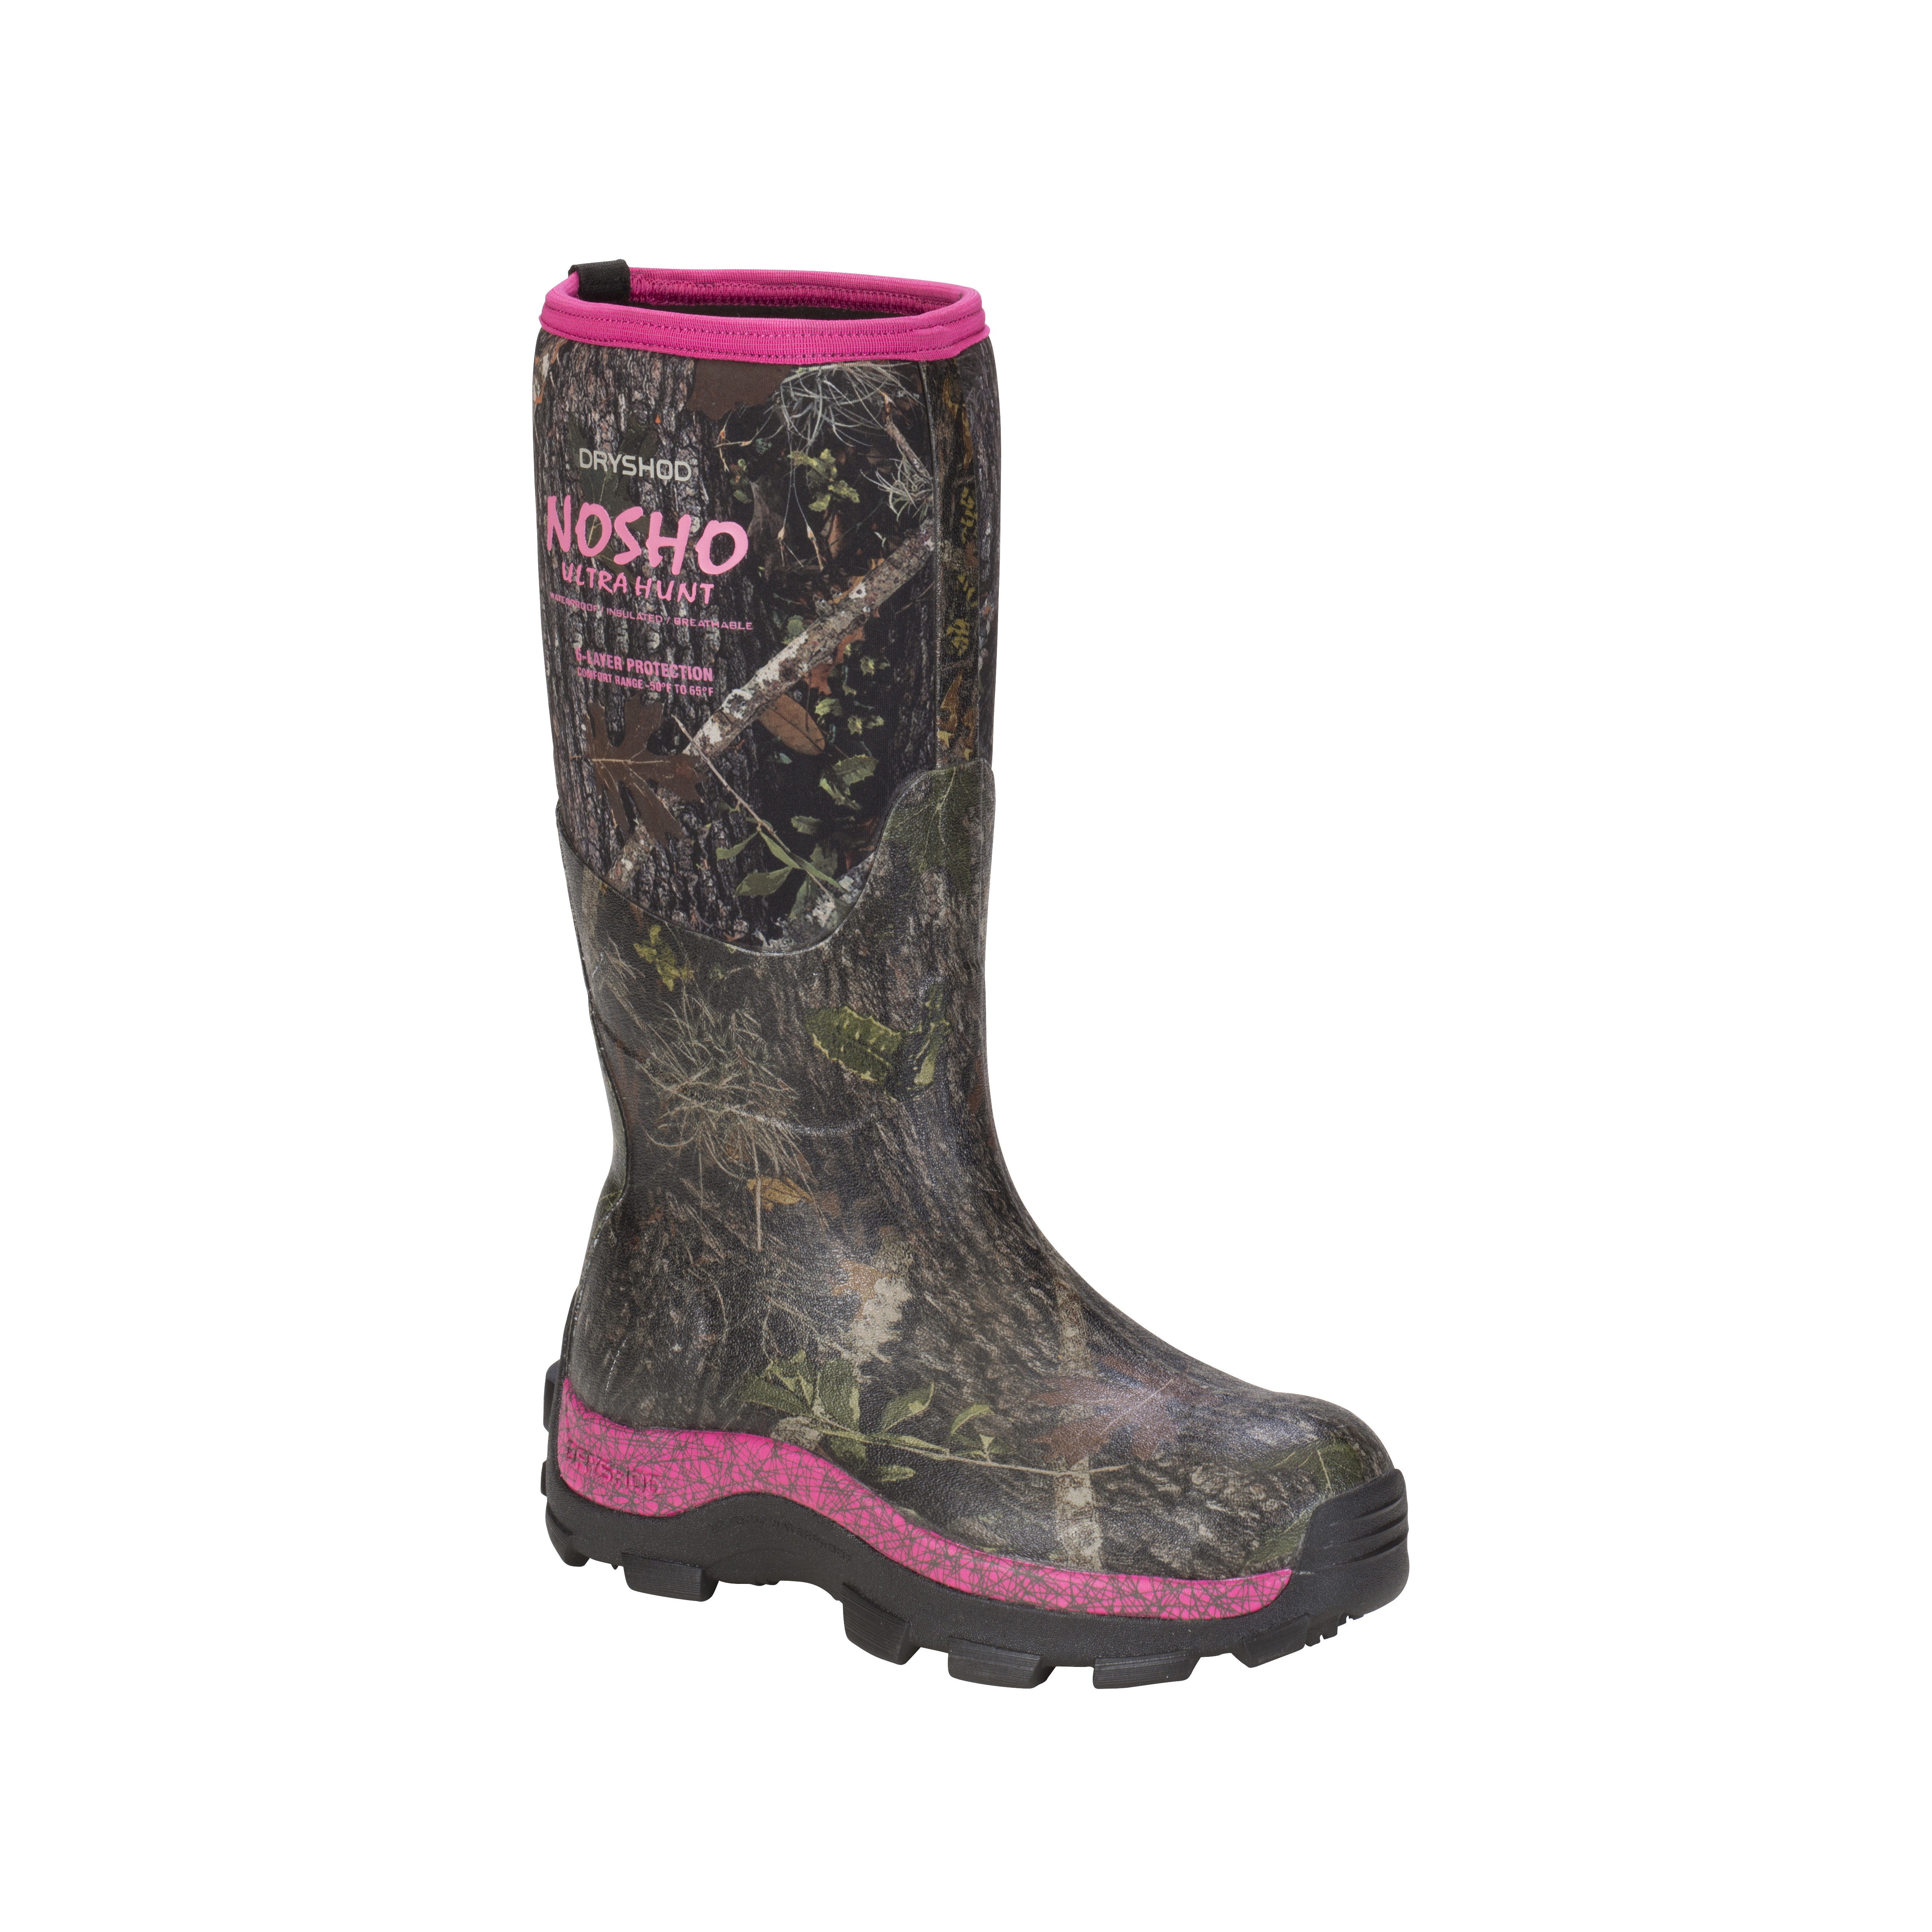 Dryshod Women's NoSho Ultra Hunt Camo Extreme Cold-Condition Boots - Hi Cut - Size 7, Camo/Pink